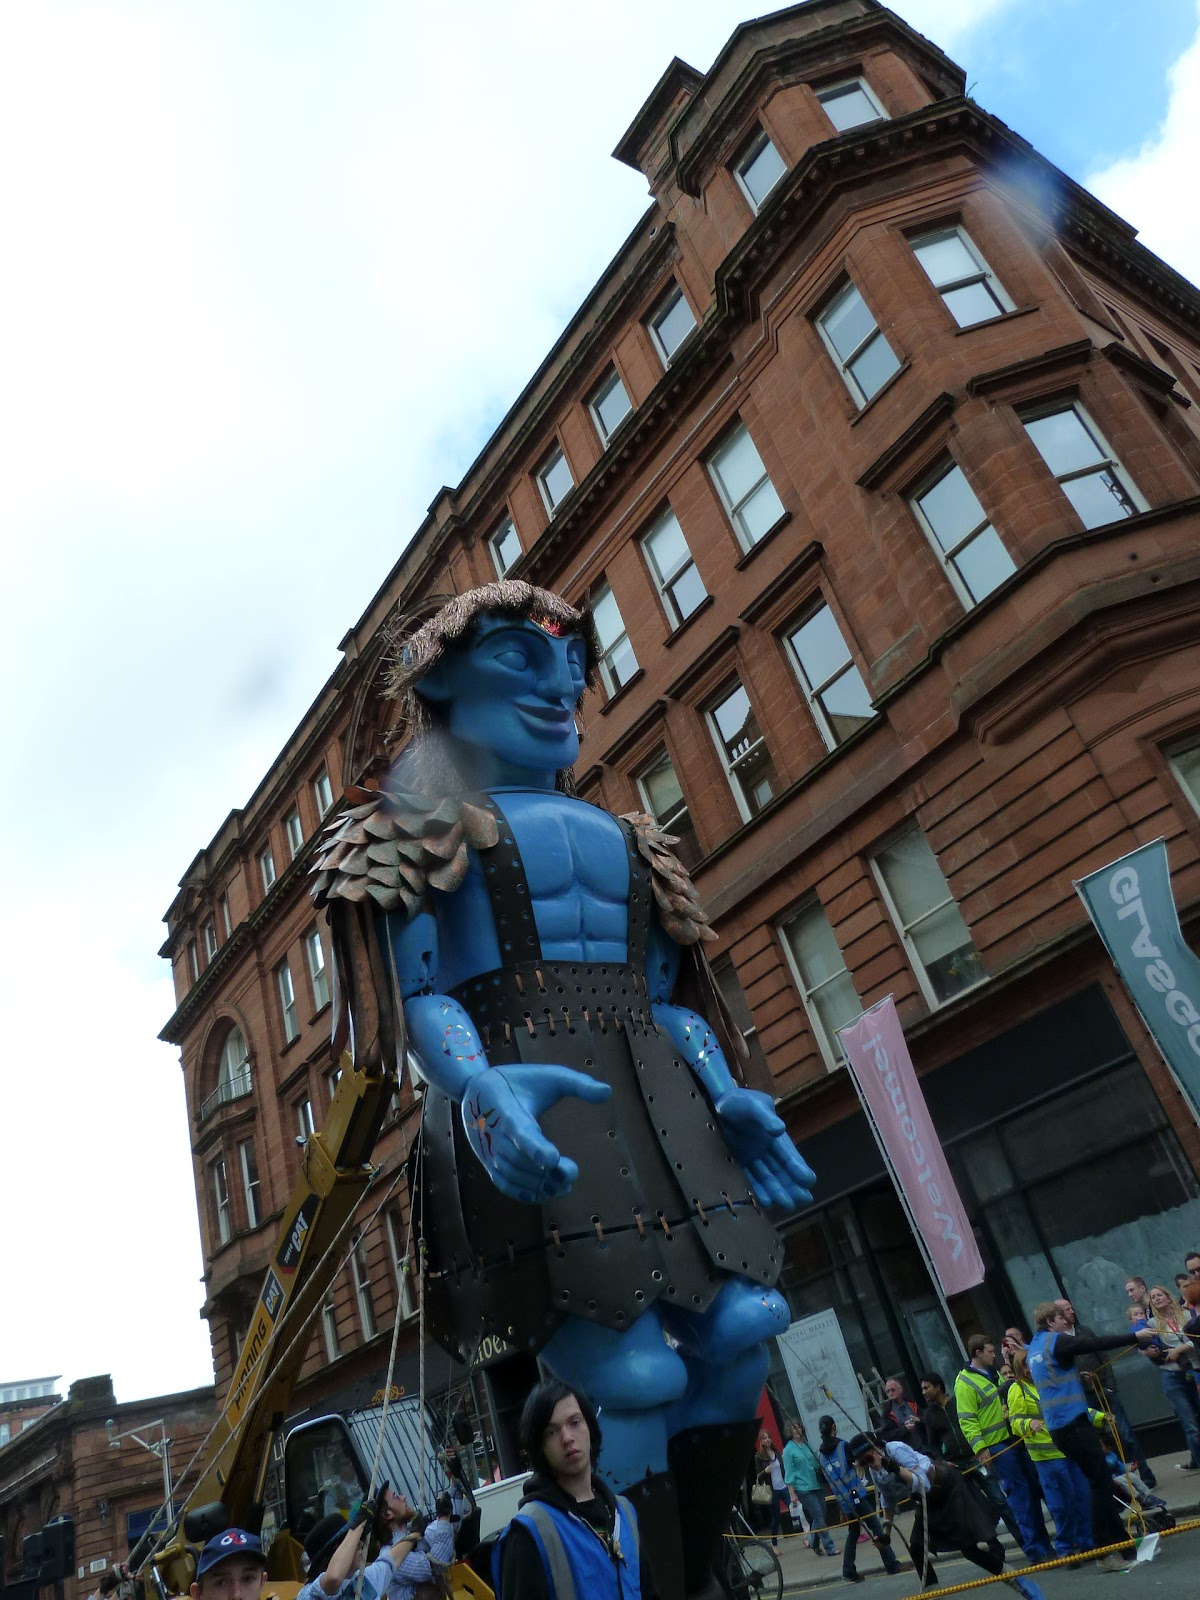 The Big Man at Glasgow's Merchant City Festival